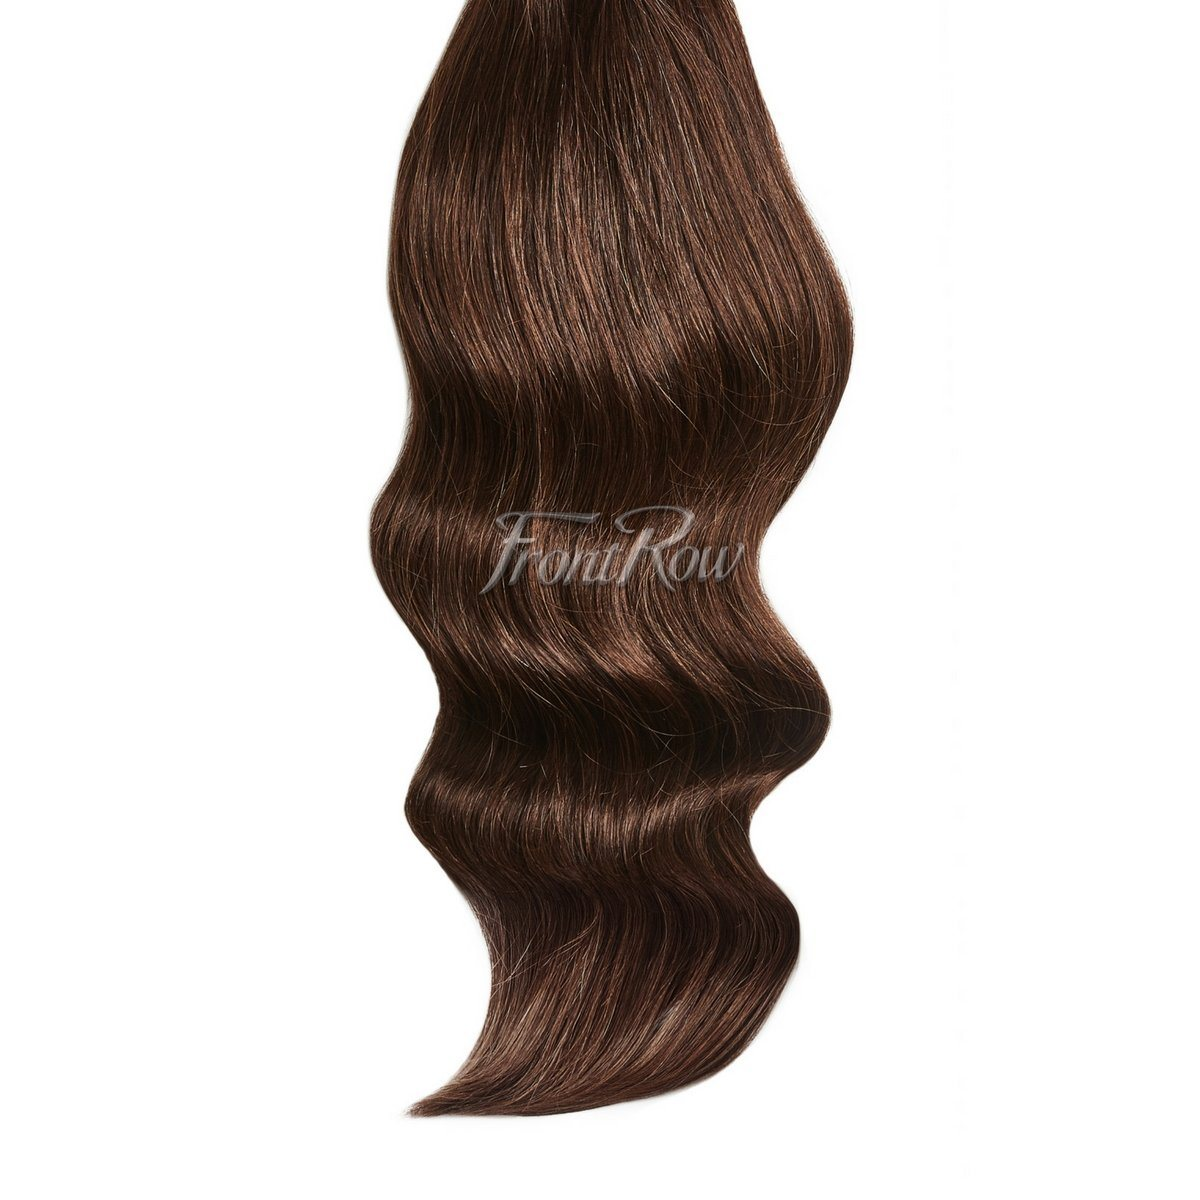 Wham! Bam! Glam! 20inch Dark Brown Clip-in Hair Extensions